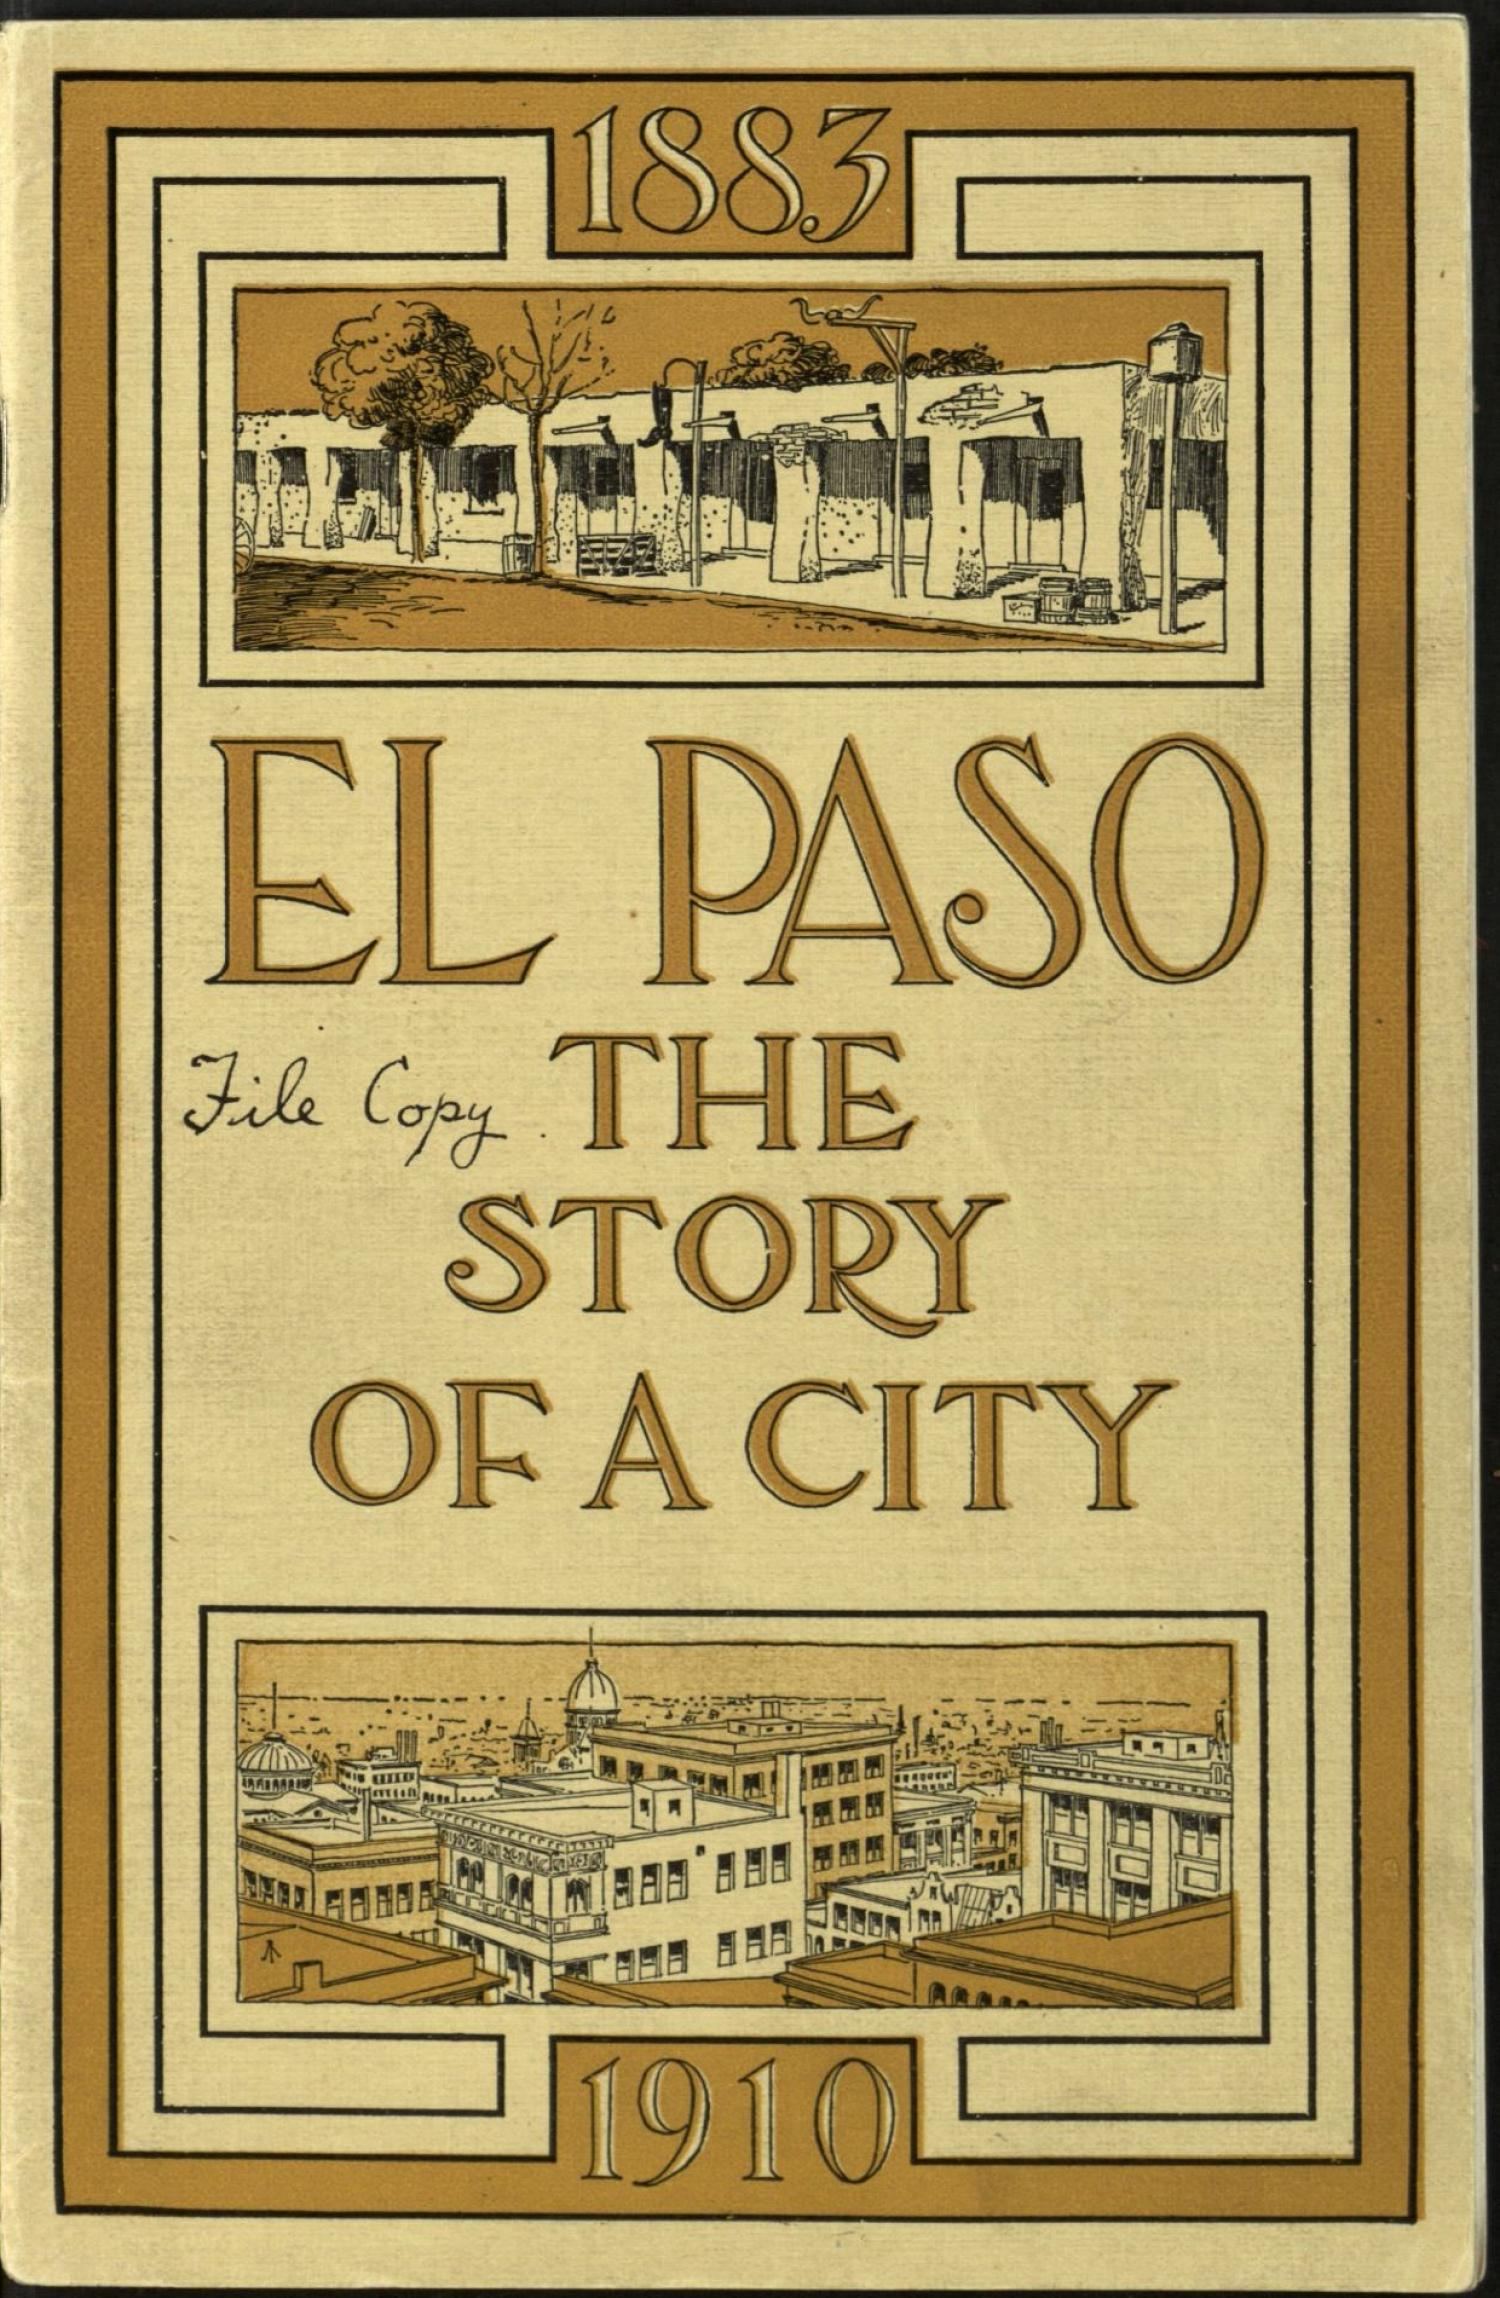 [El Paso: The Story of a City]                                                                                                      Front Cover